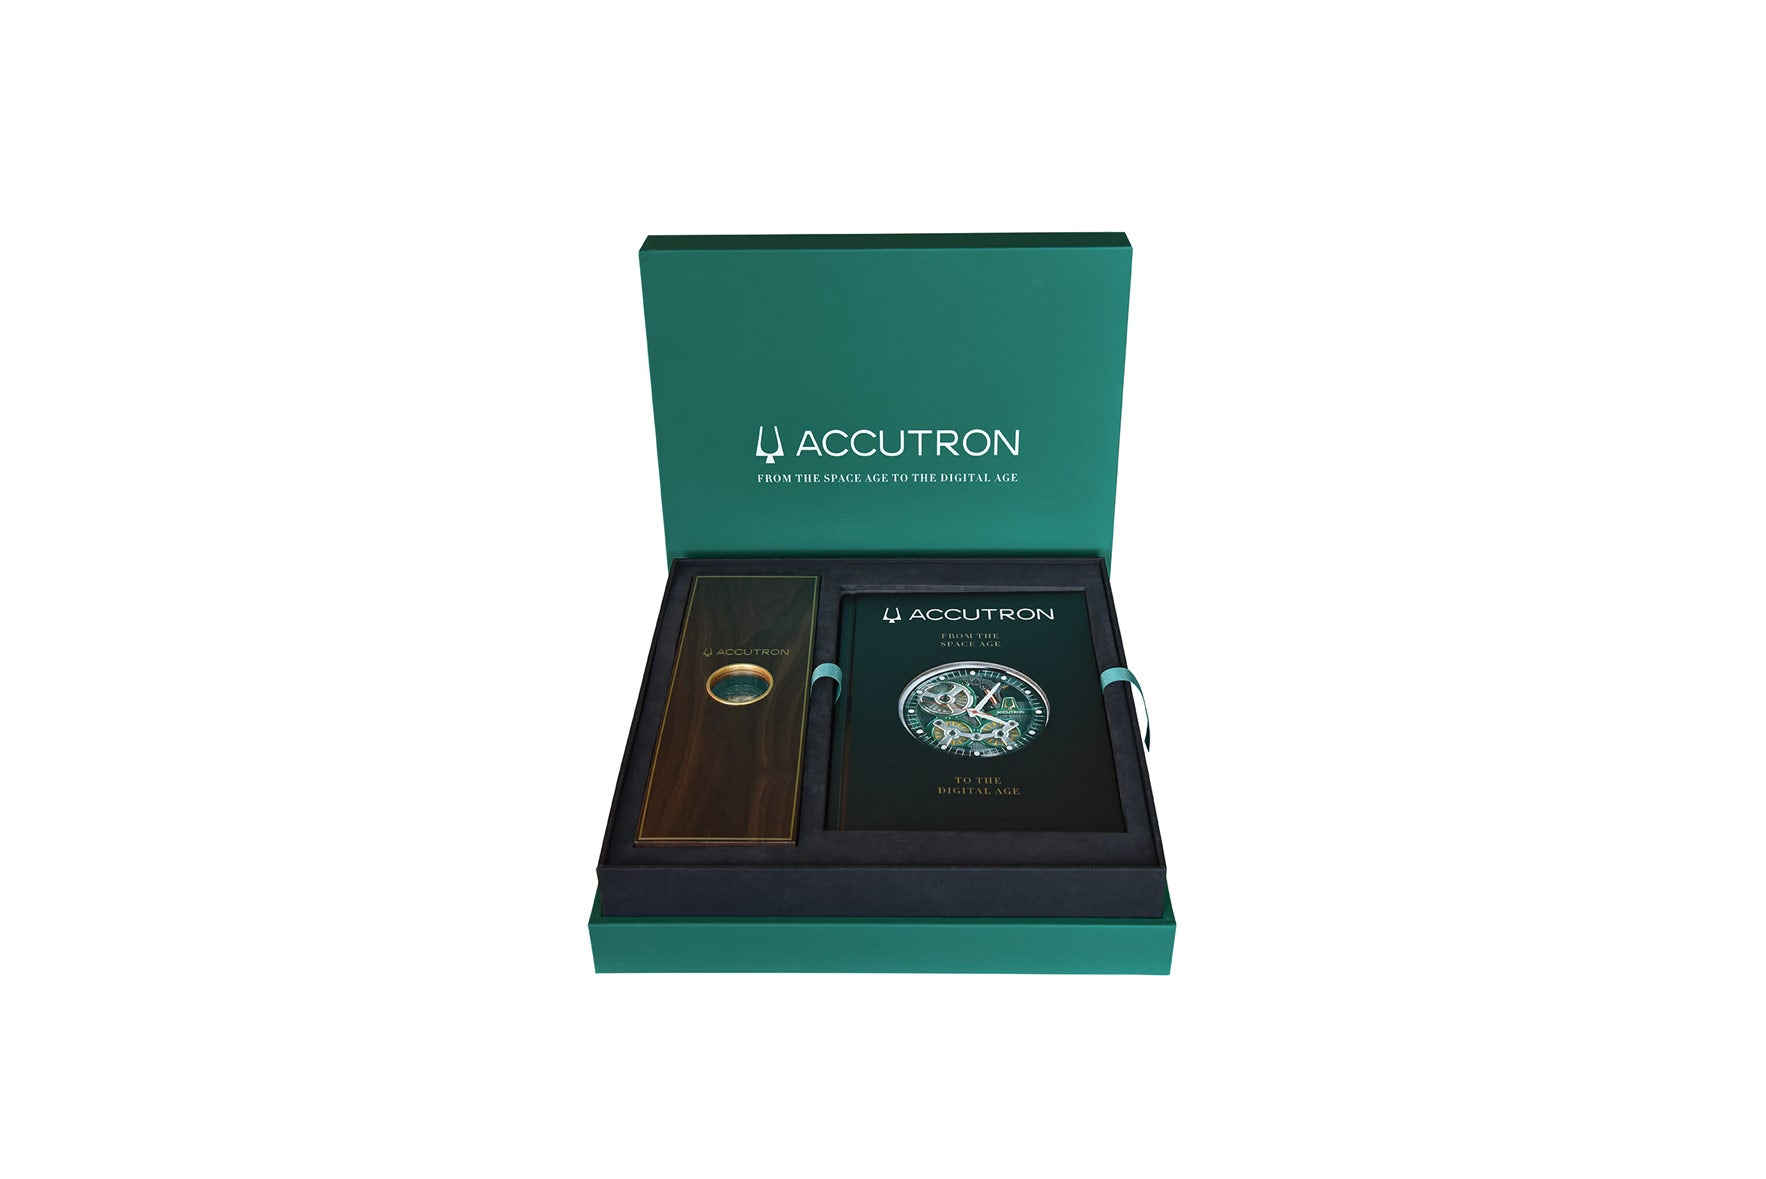 Accutron Assouline box